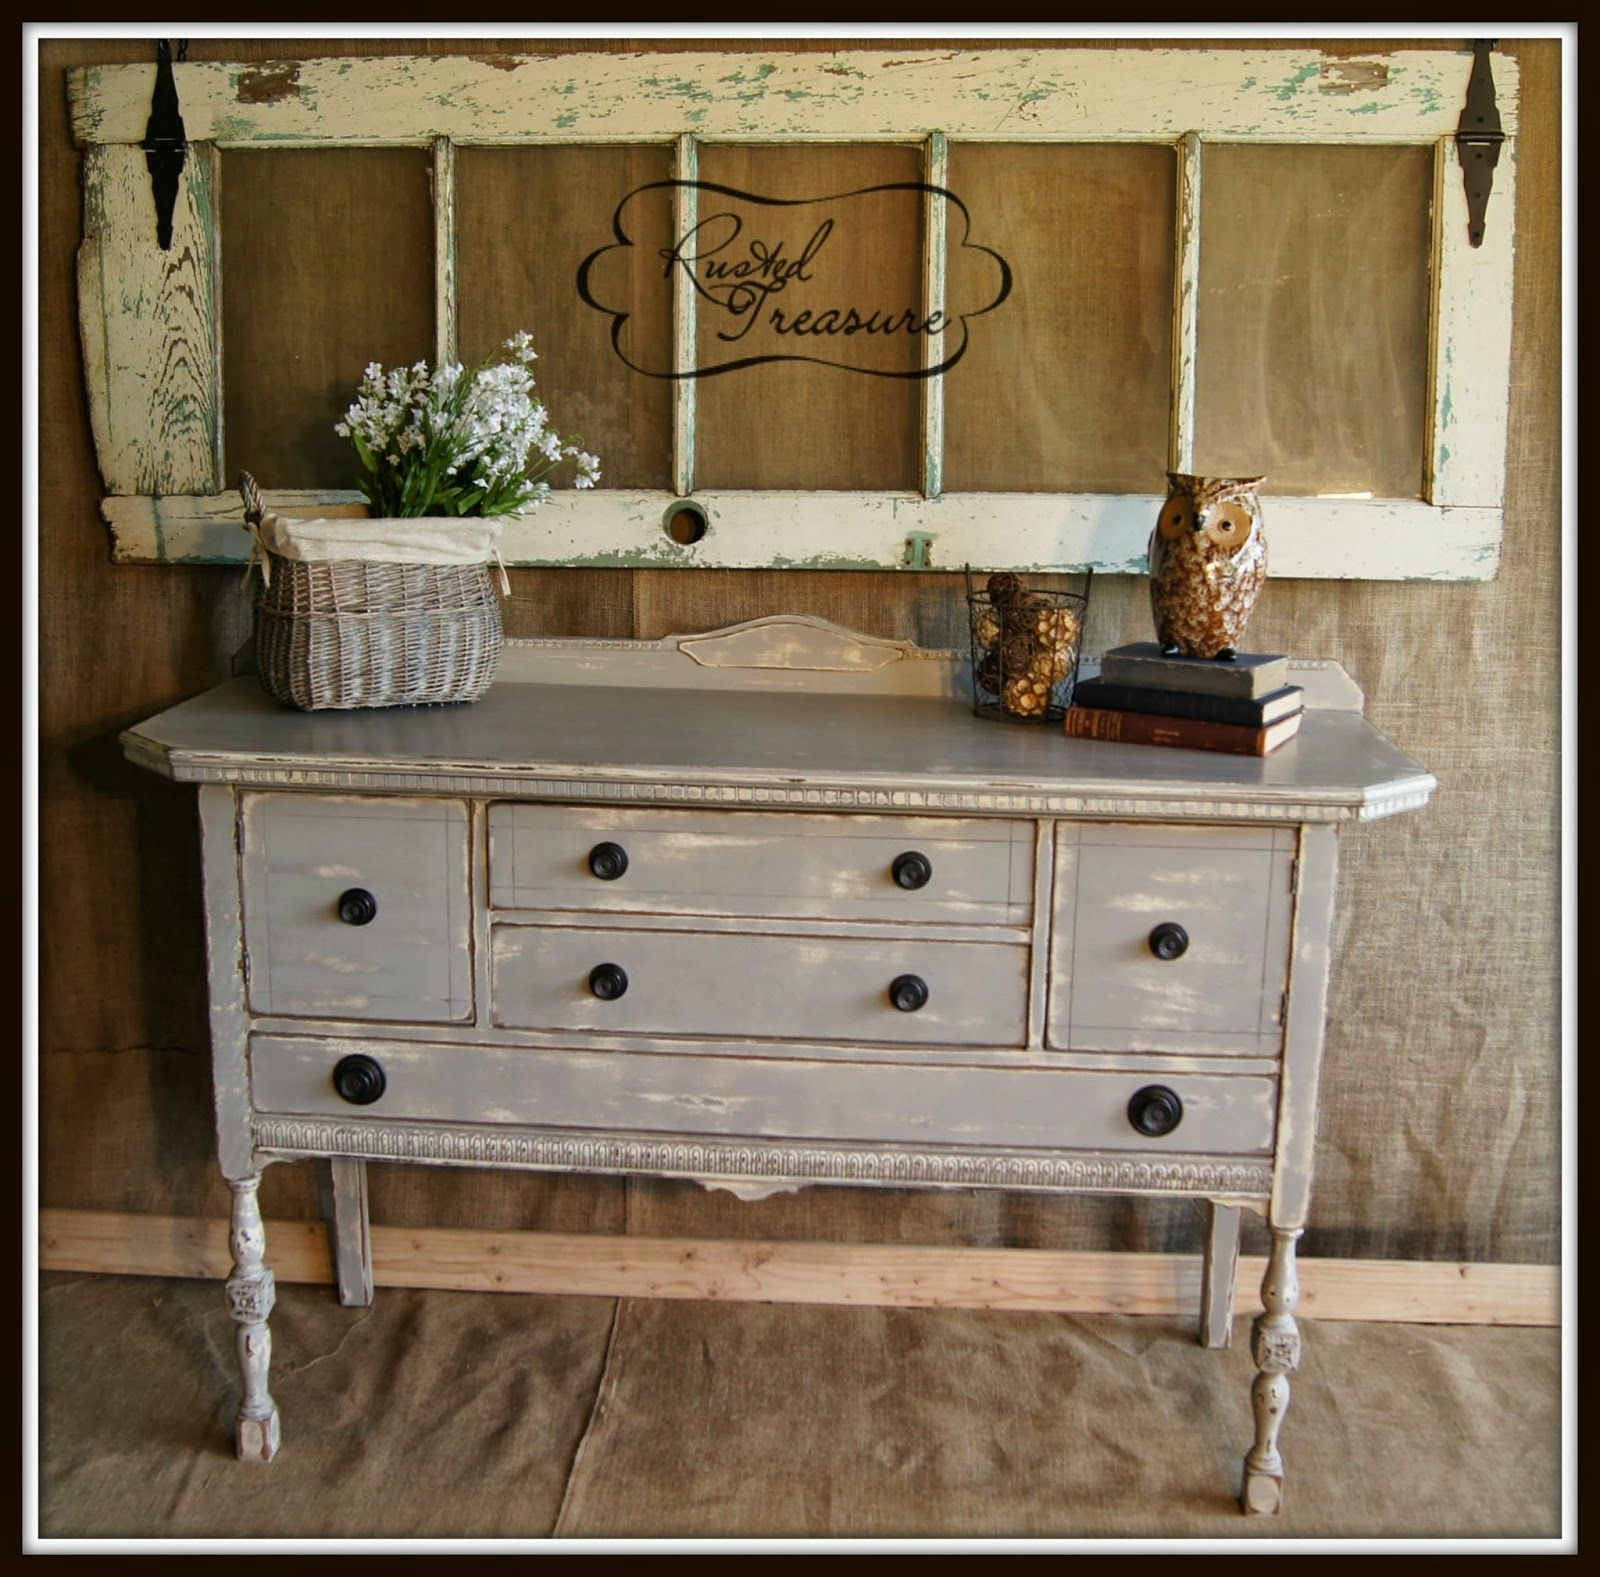 Best 25 Refinished Buffet Ideas On Pinterest Two Toned Dresser Refinished Furniture And 3